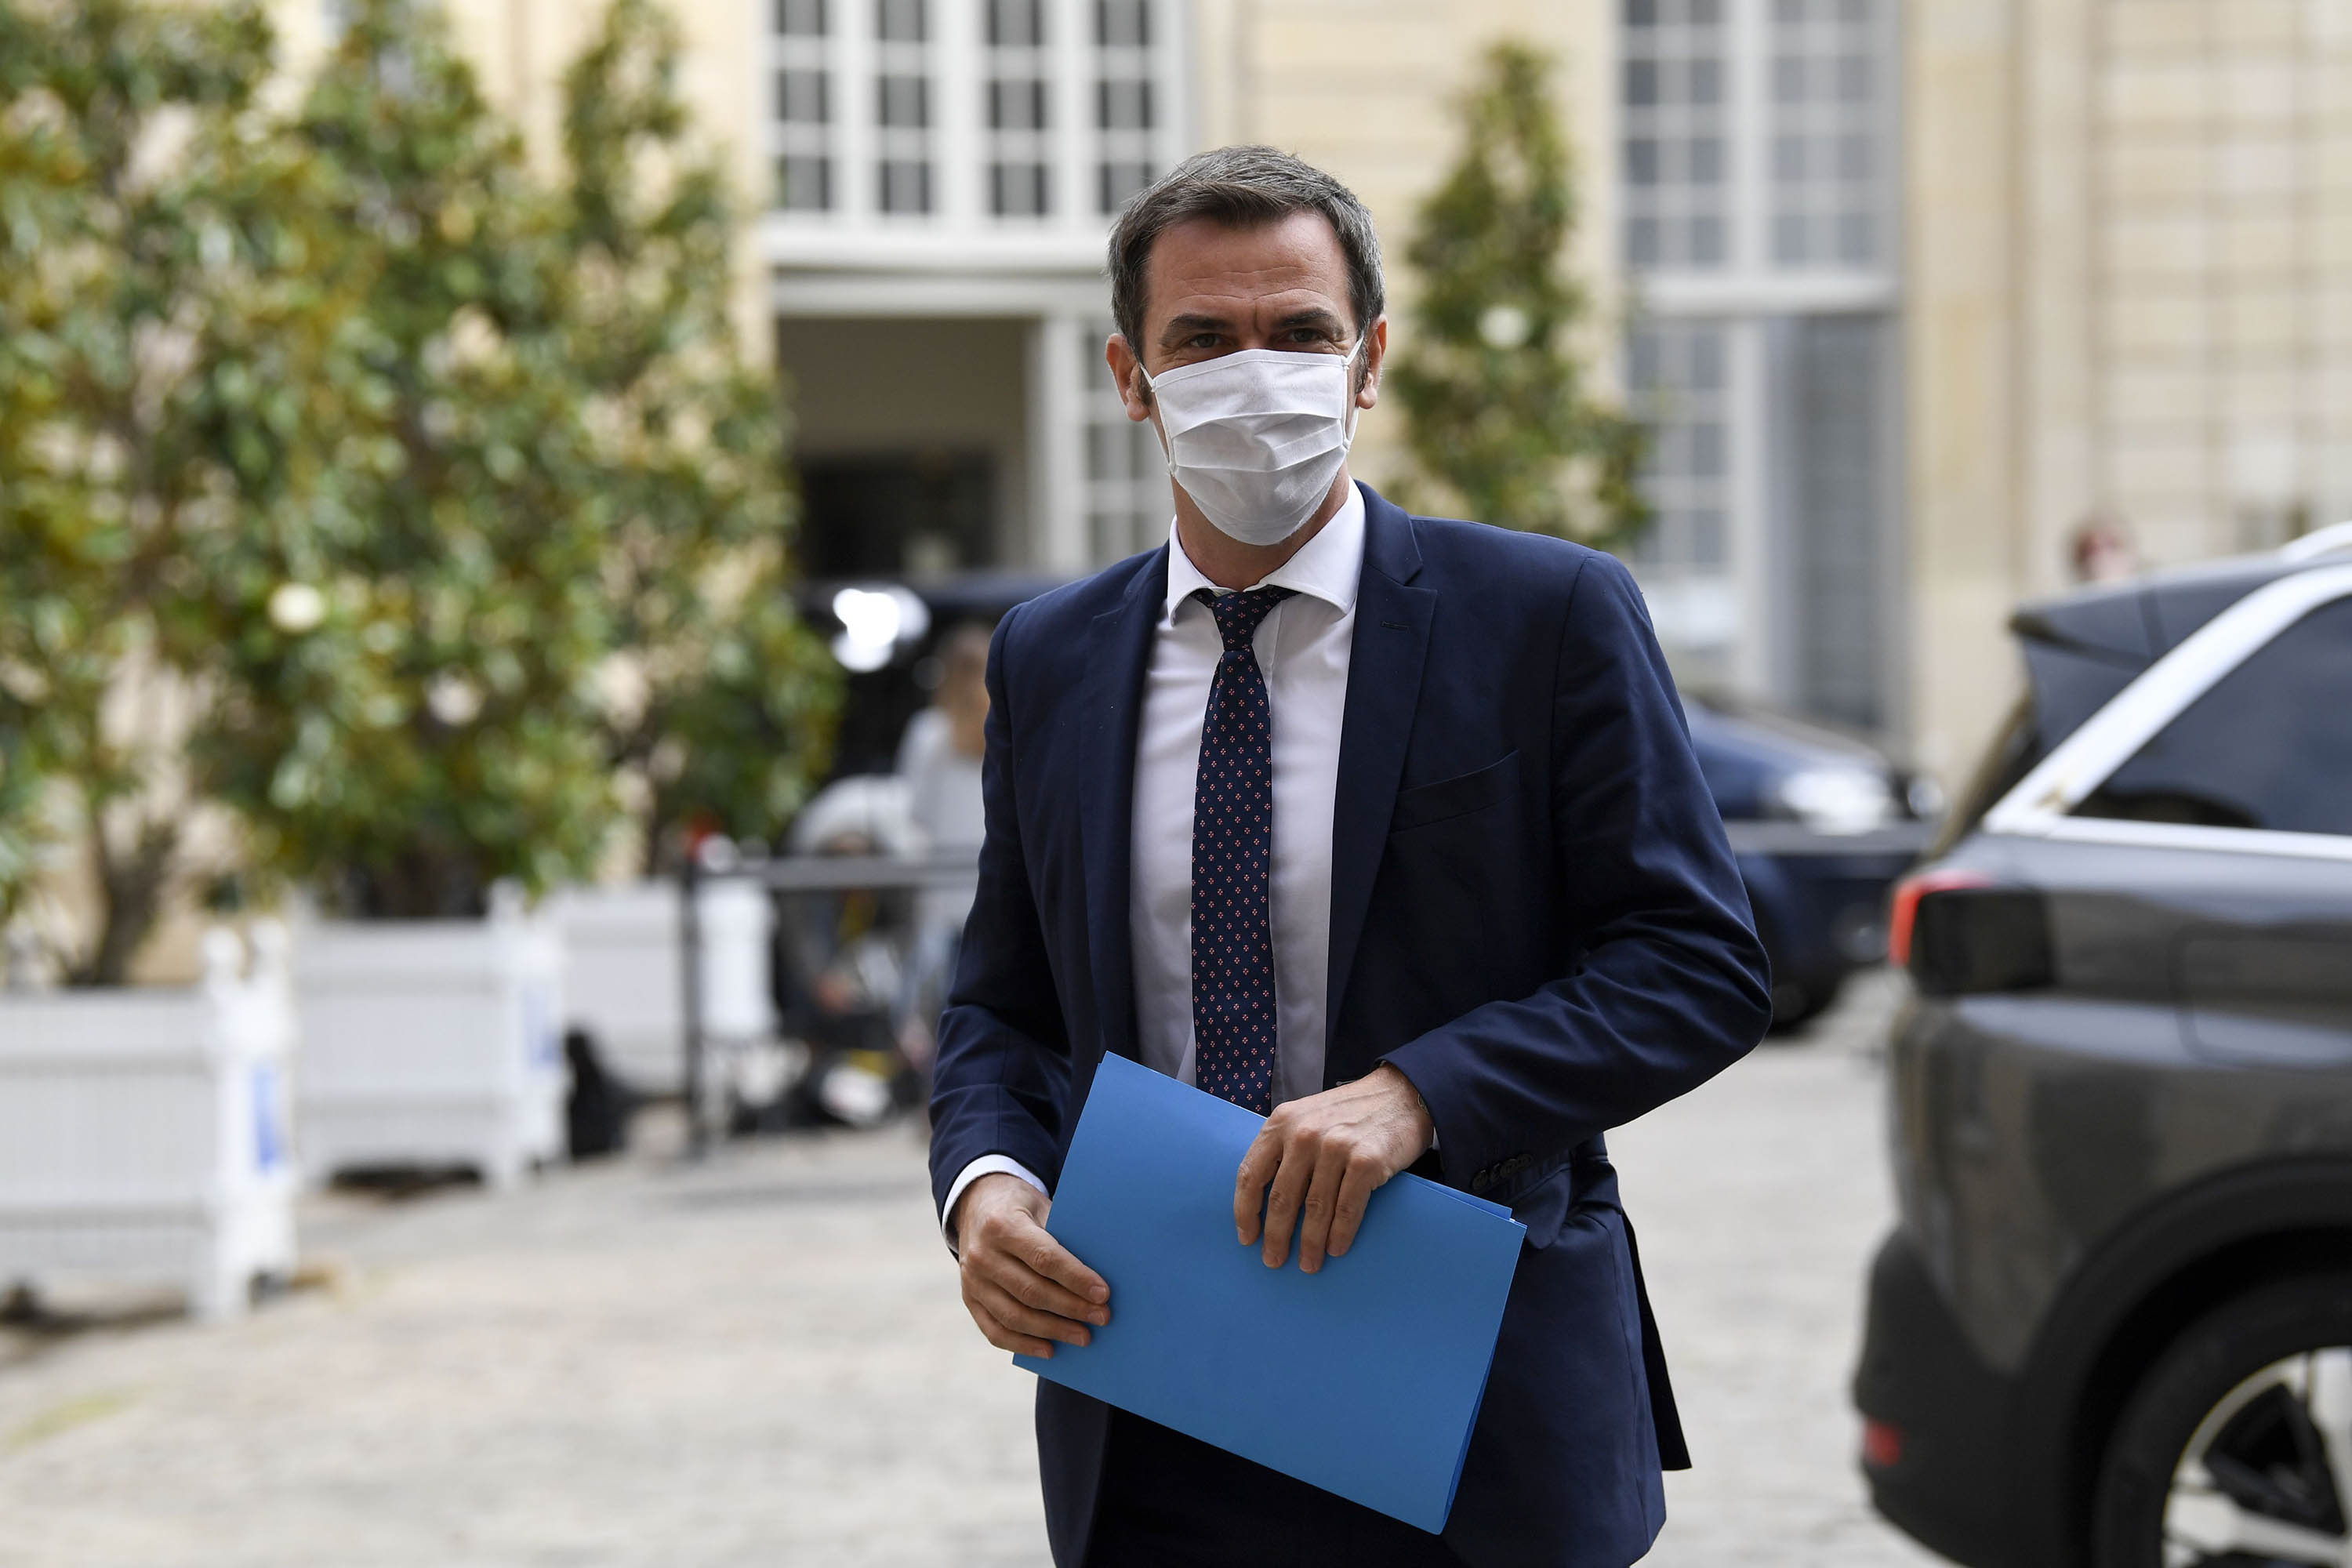 French Health Minister Olivier Véran is pictured as he arrives at a conference in Paris on July 17.